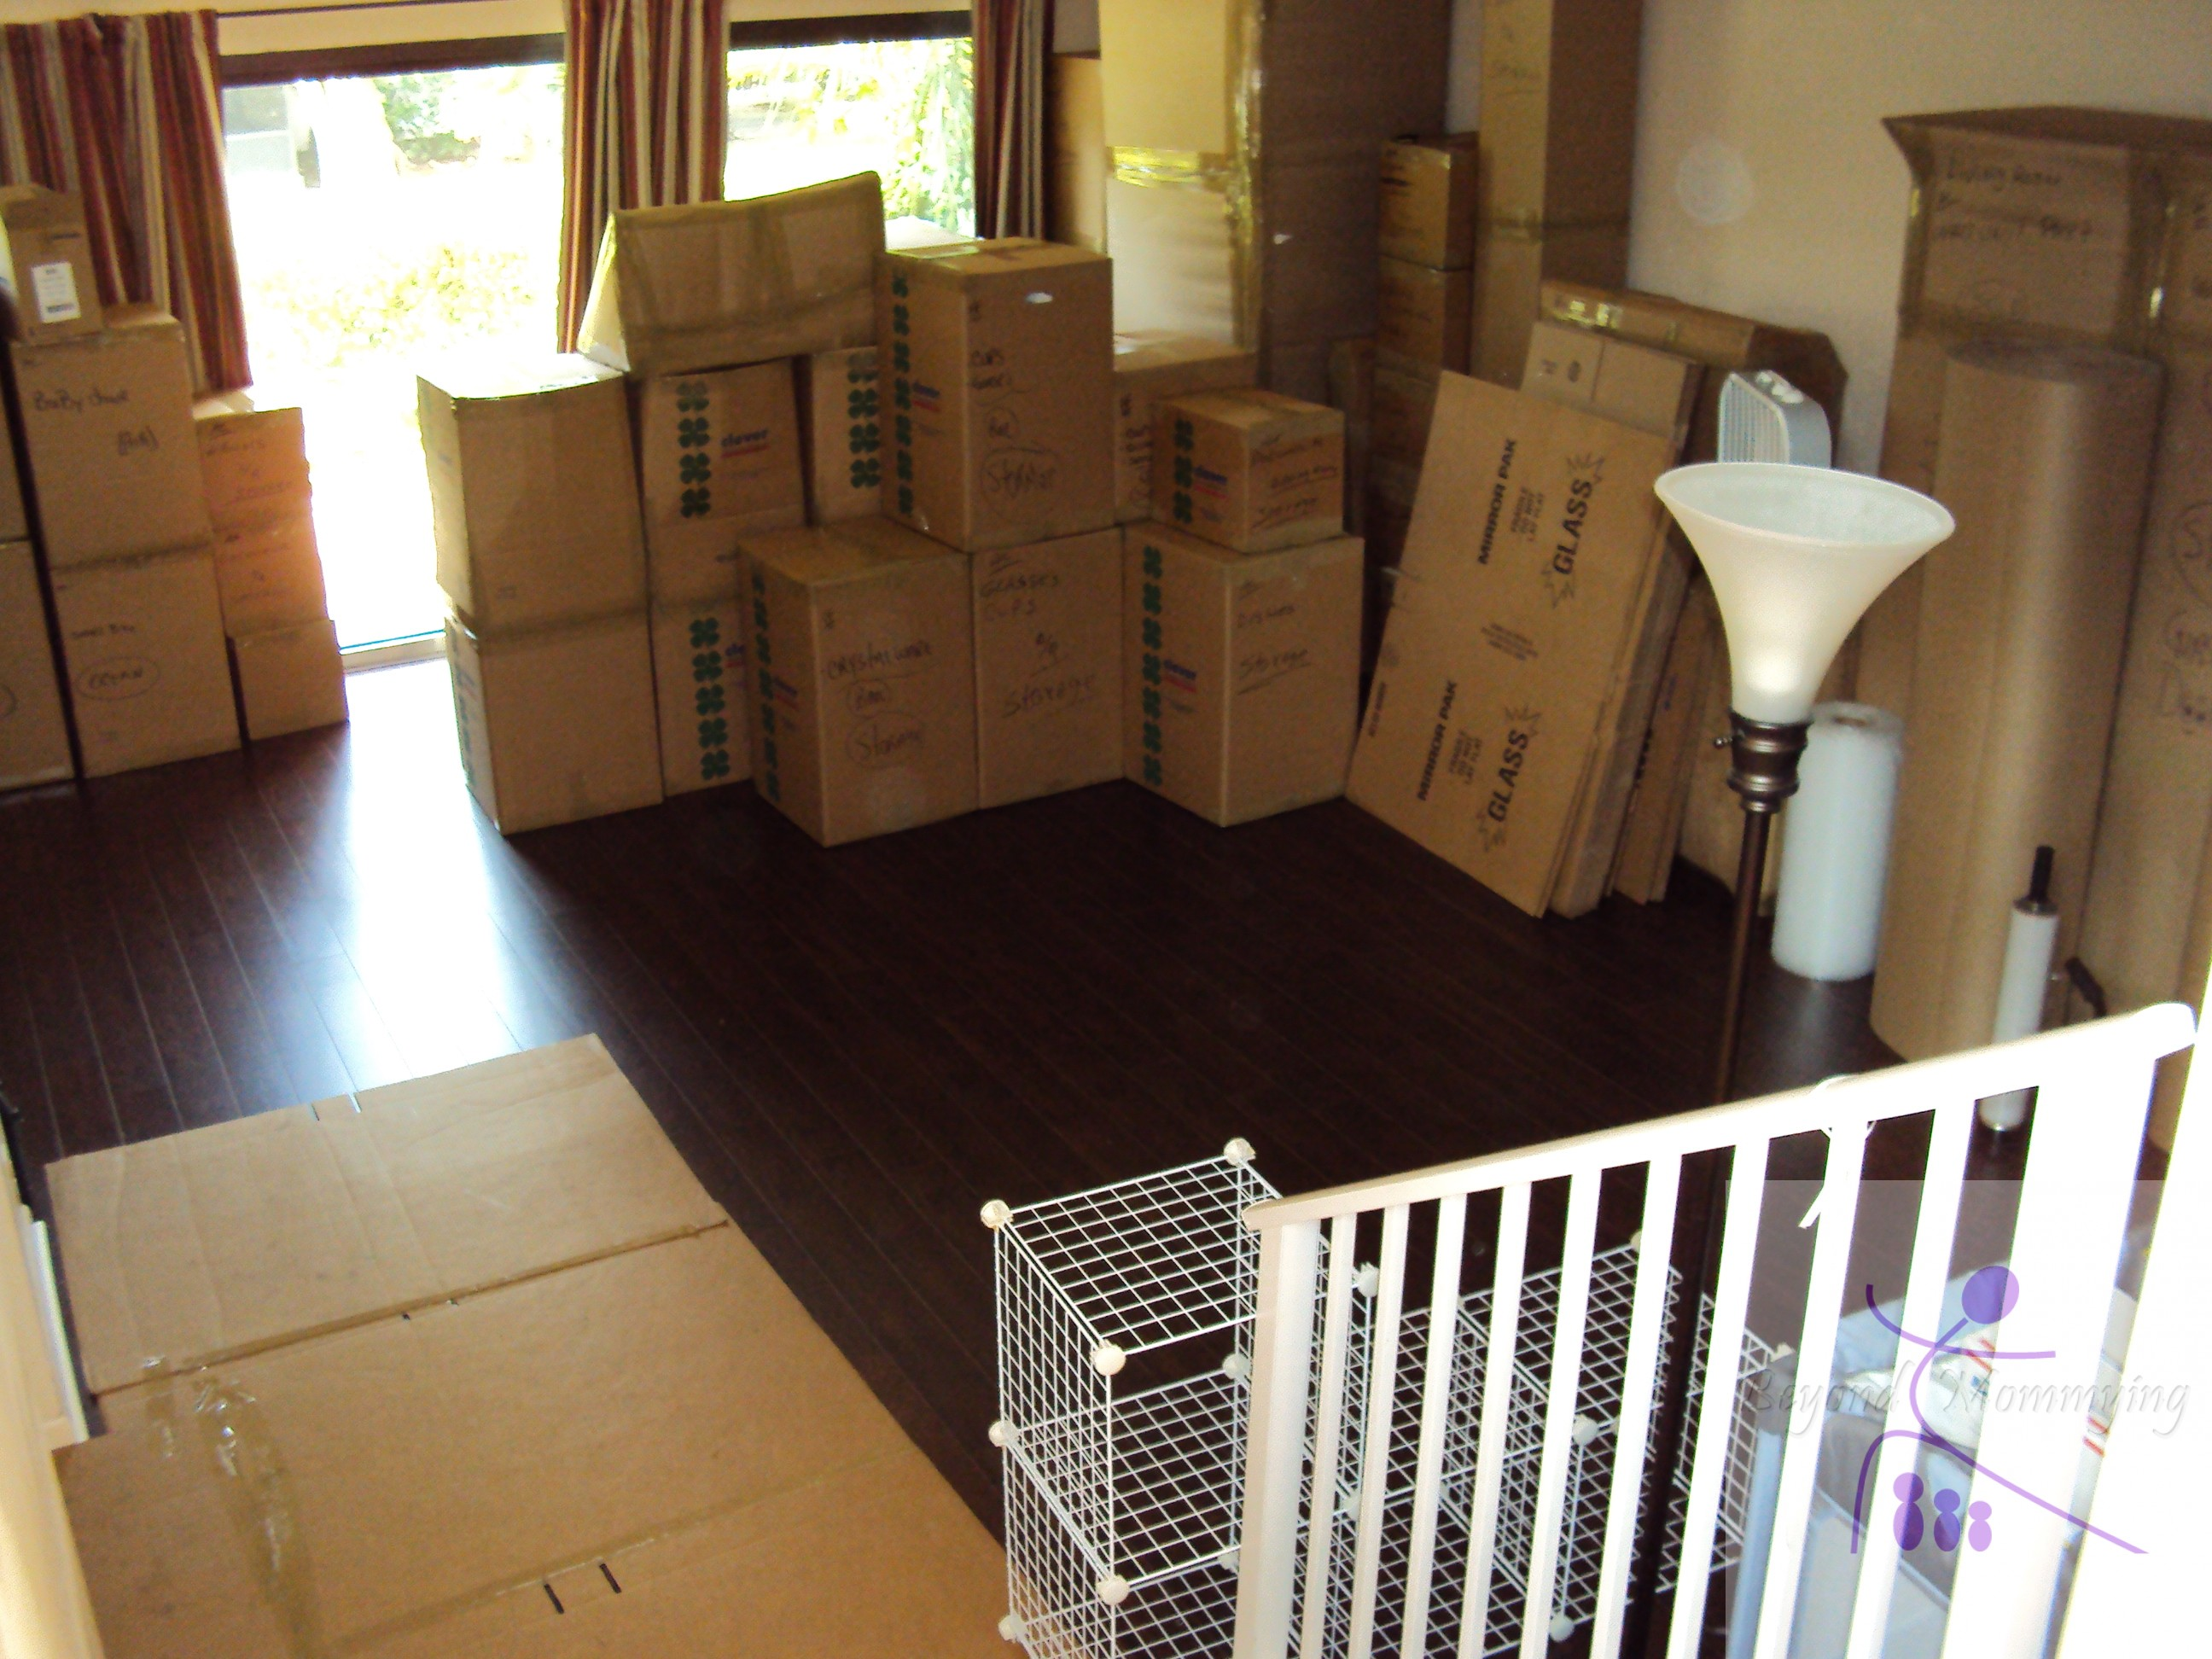 One thing to do each month of pregnancy beyond mommying for Used boxes for moving house